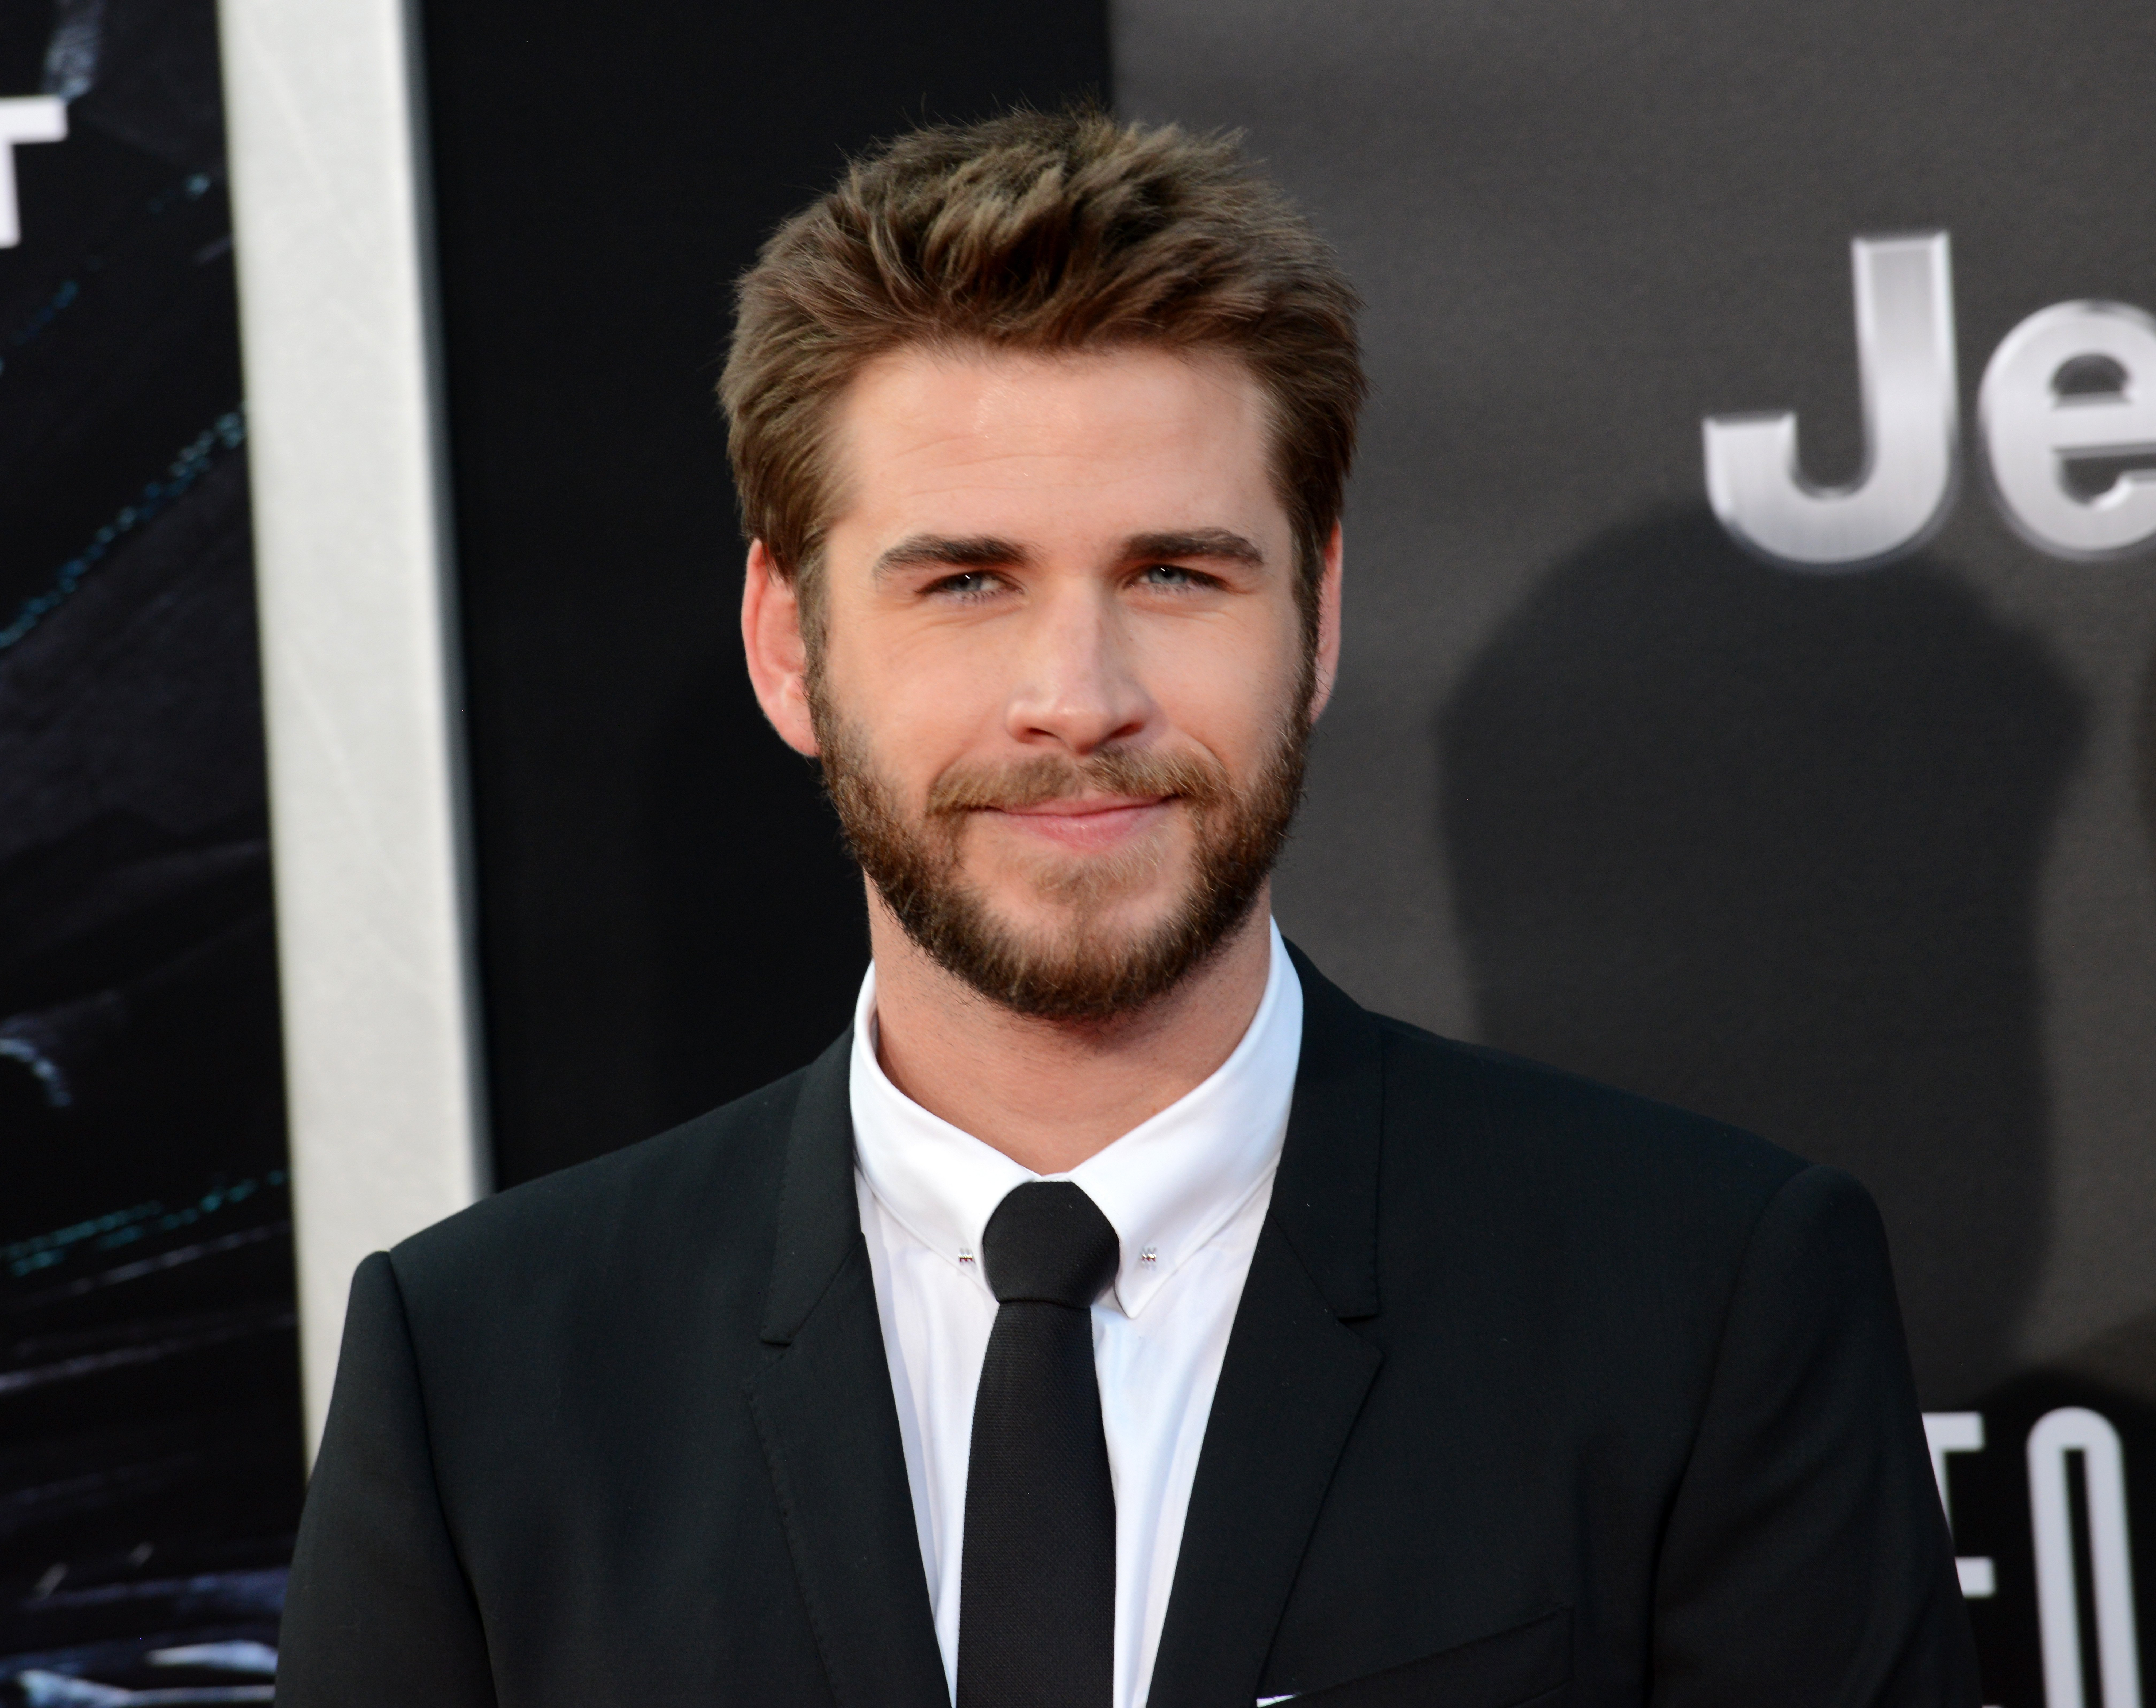 """Liam Hemsworth arrives for the Premiere Of 20th Century Fox's """"Independence Day: Resurgence"""" held at TCL Chinese Theatre on June 20, 2016, in Hollywood, California. 